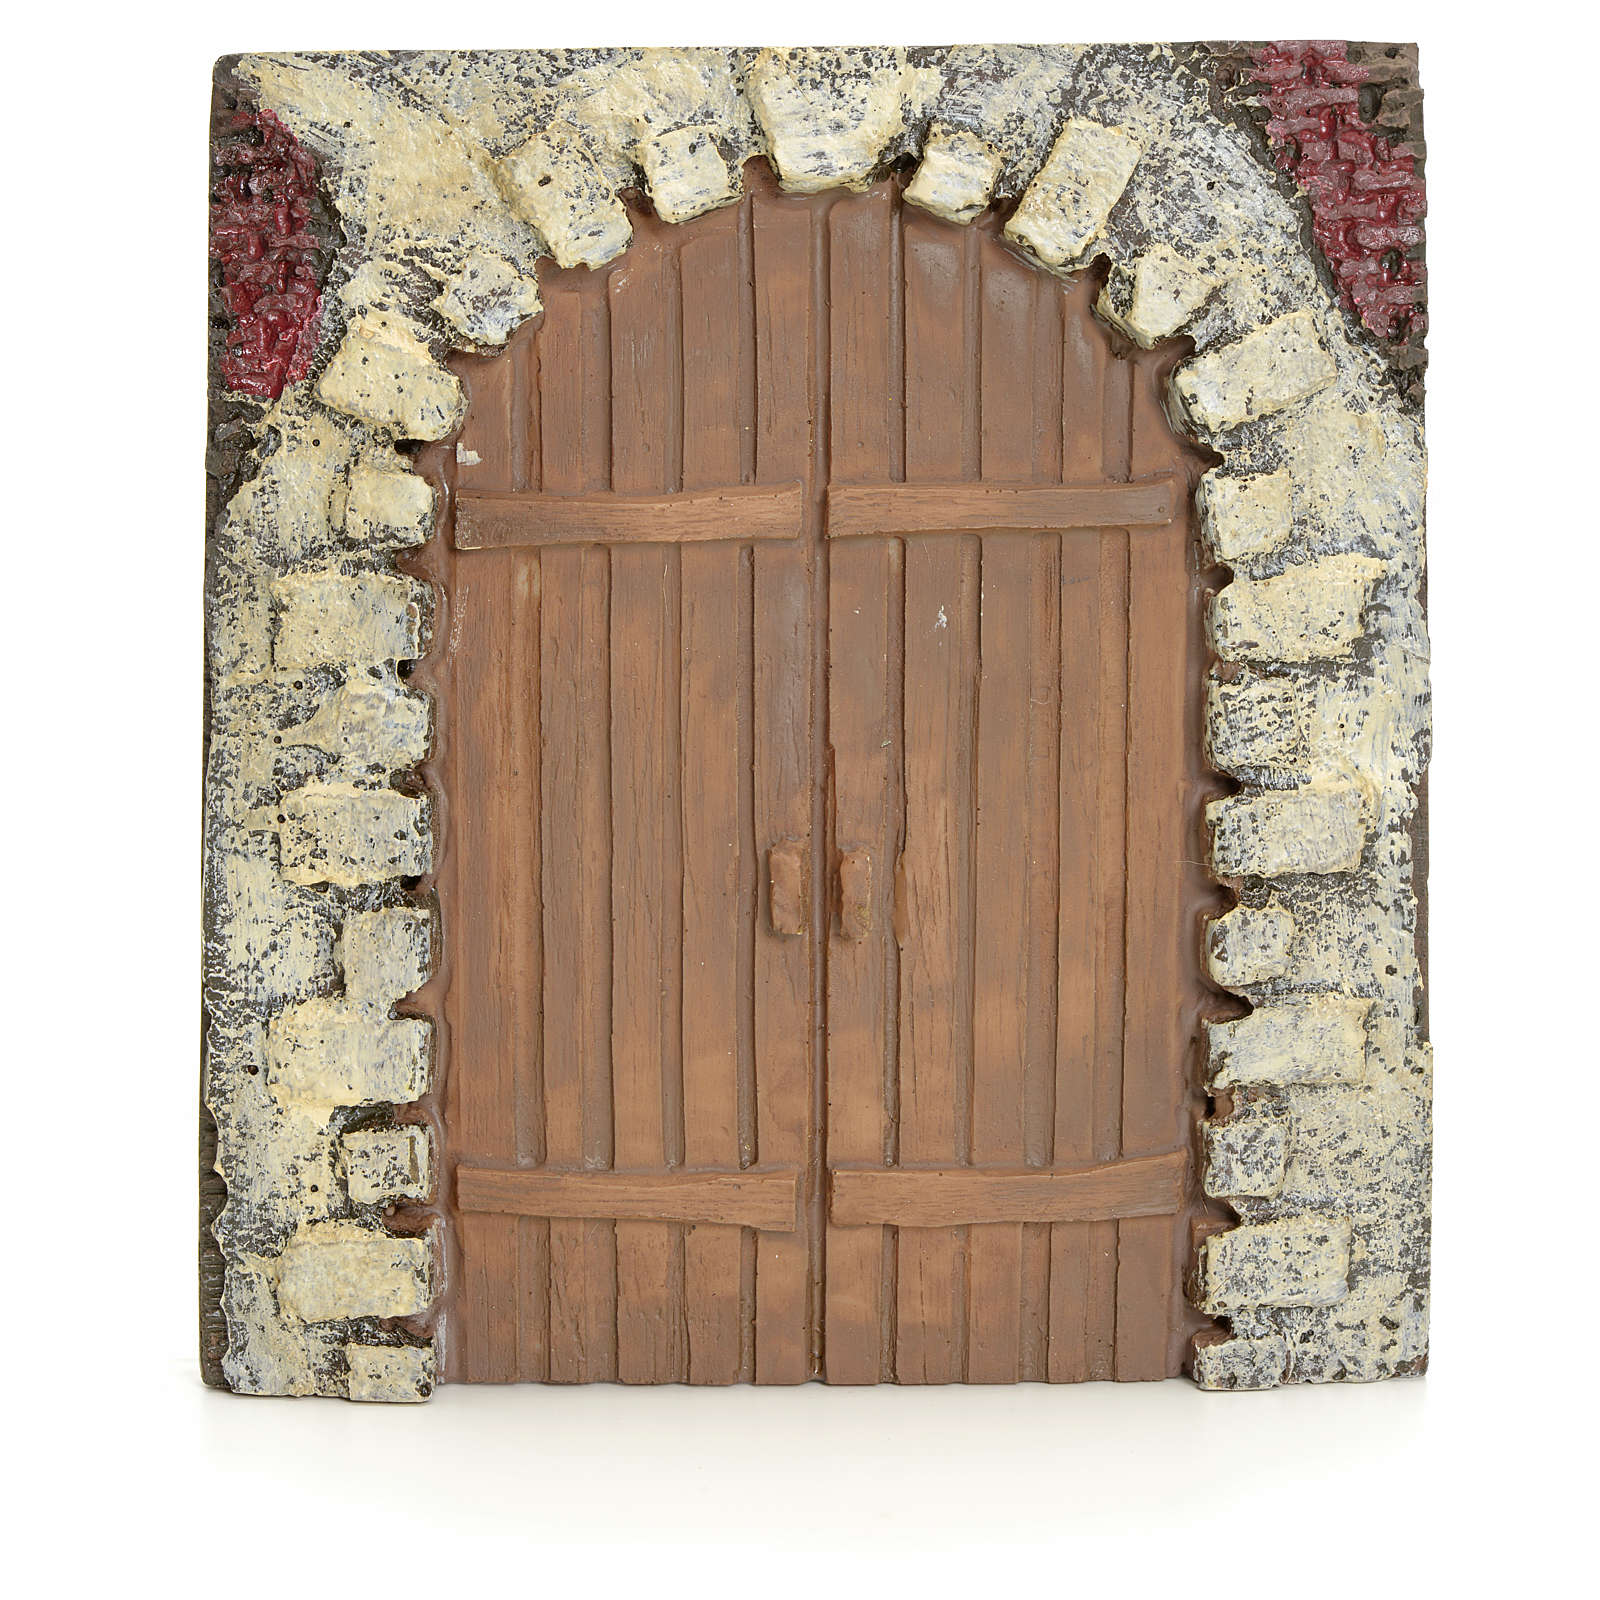 Nativity accessory, resin arched door 15x14cm 4